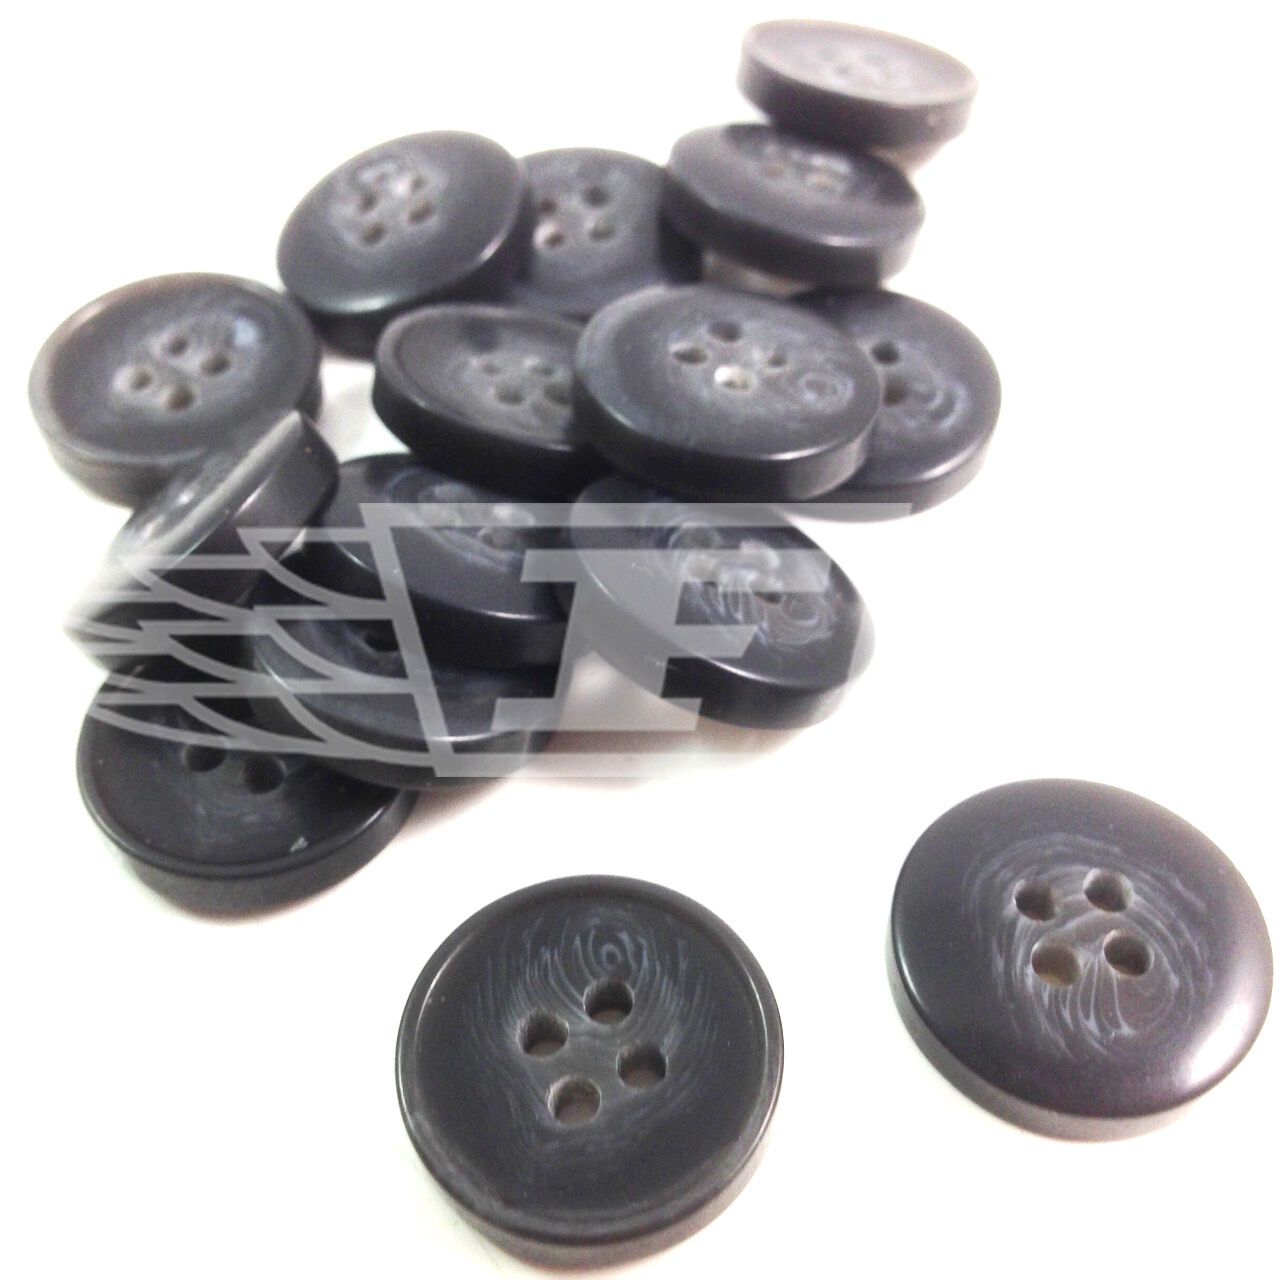 PACK OF 25 19mm BROWN TEXTURED PLASTIC BUTTON BUTTONS 2 HOLE SEWING BTN 18195-30